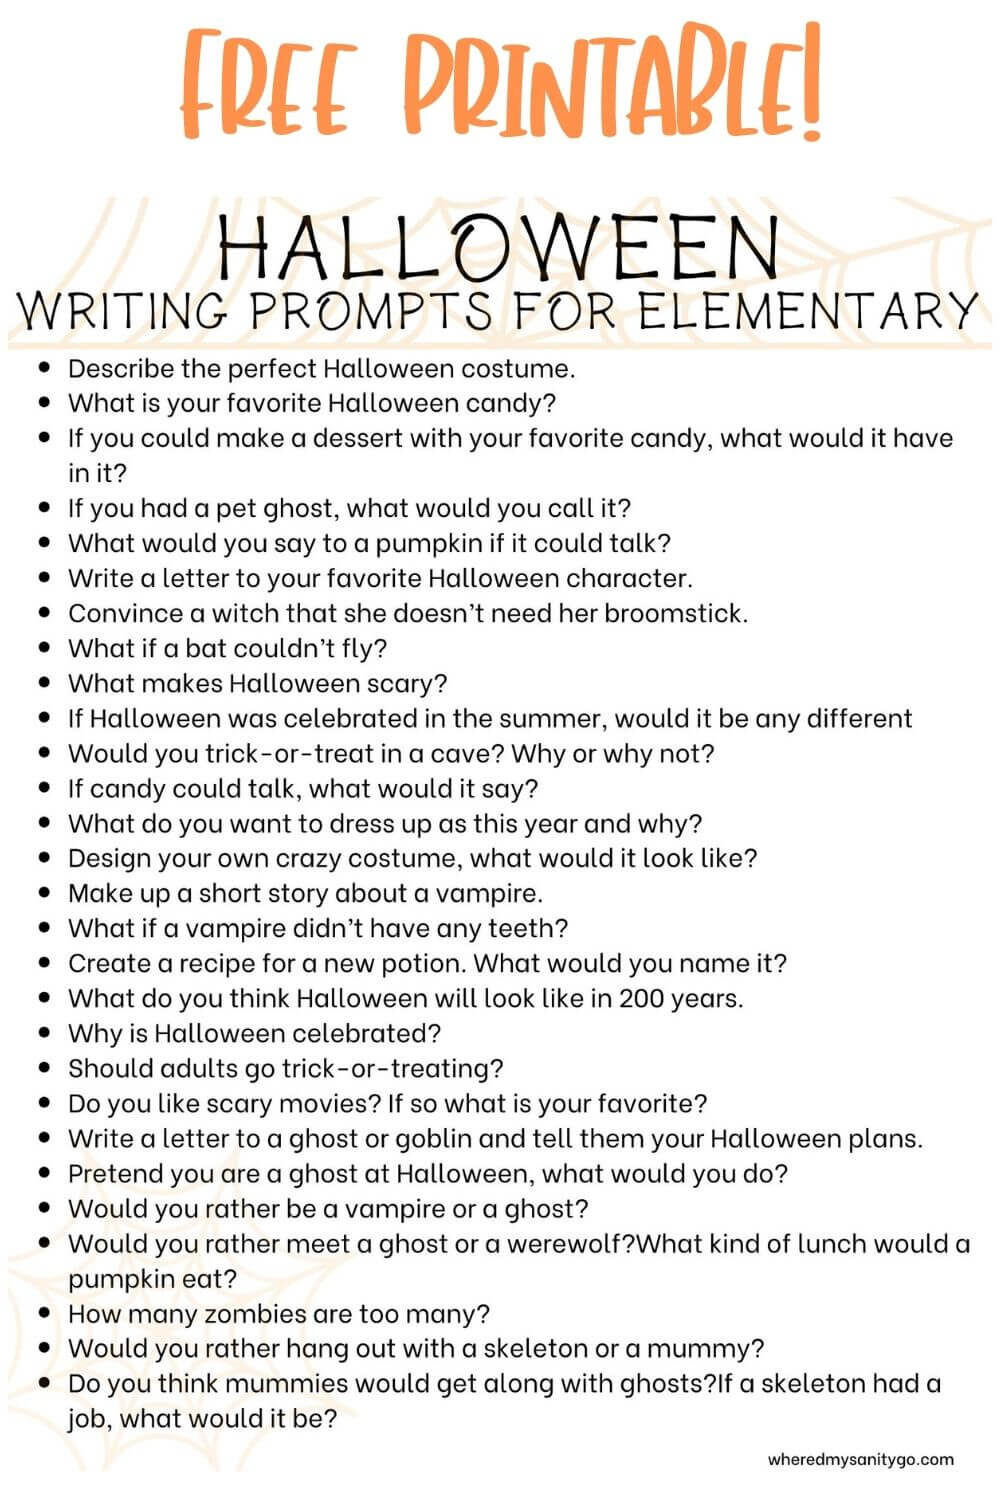 Halloween Writing Prompts for Elementary That Are Spooky and Fun Free Printable